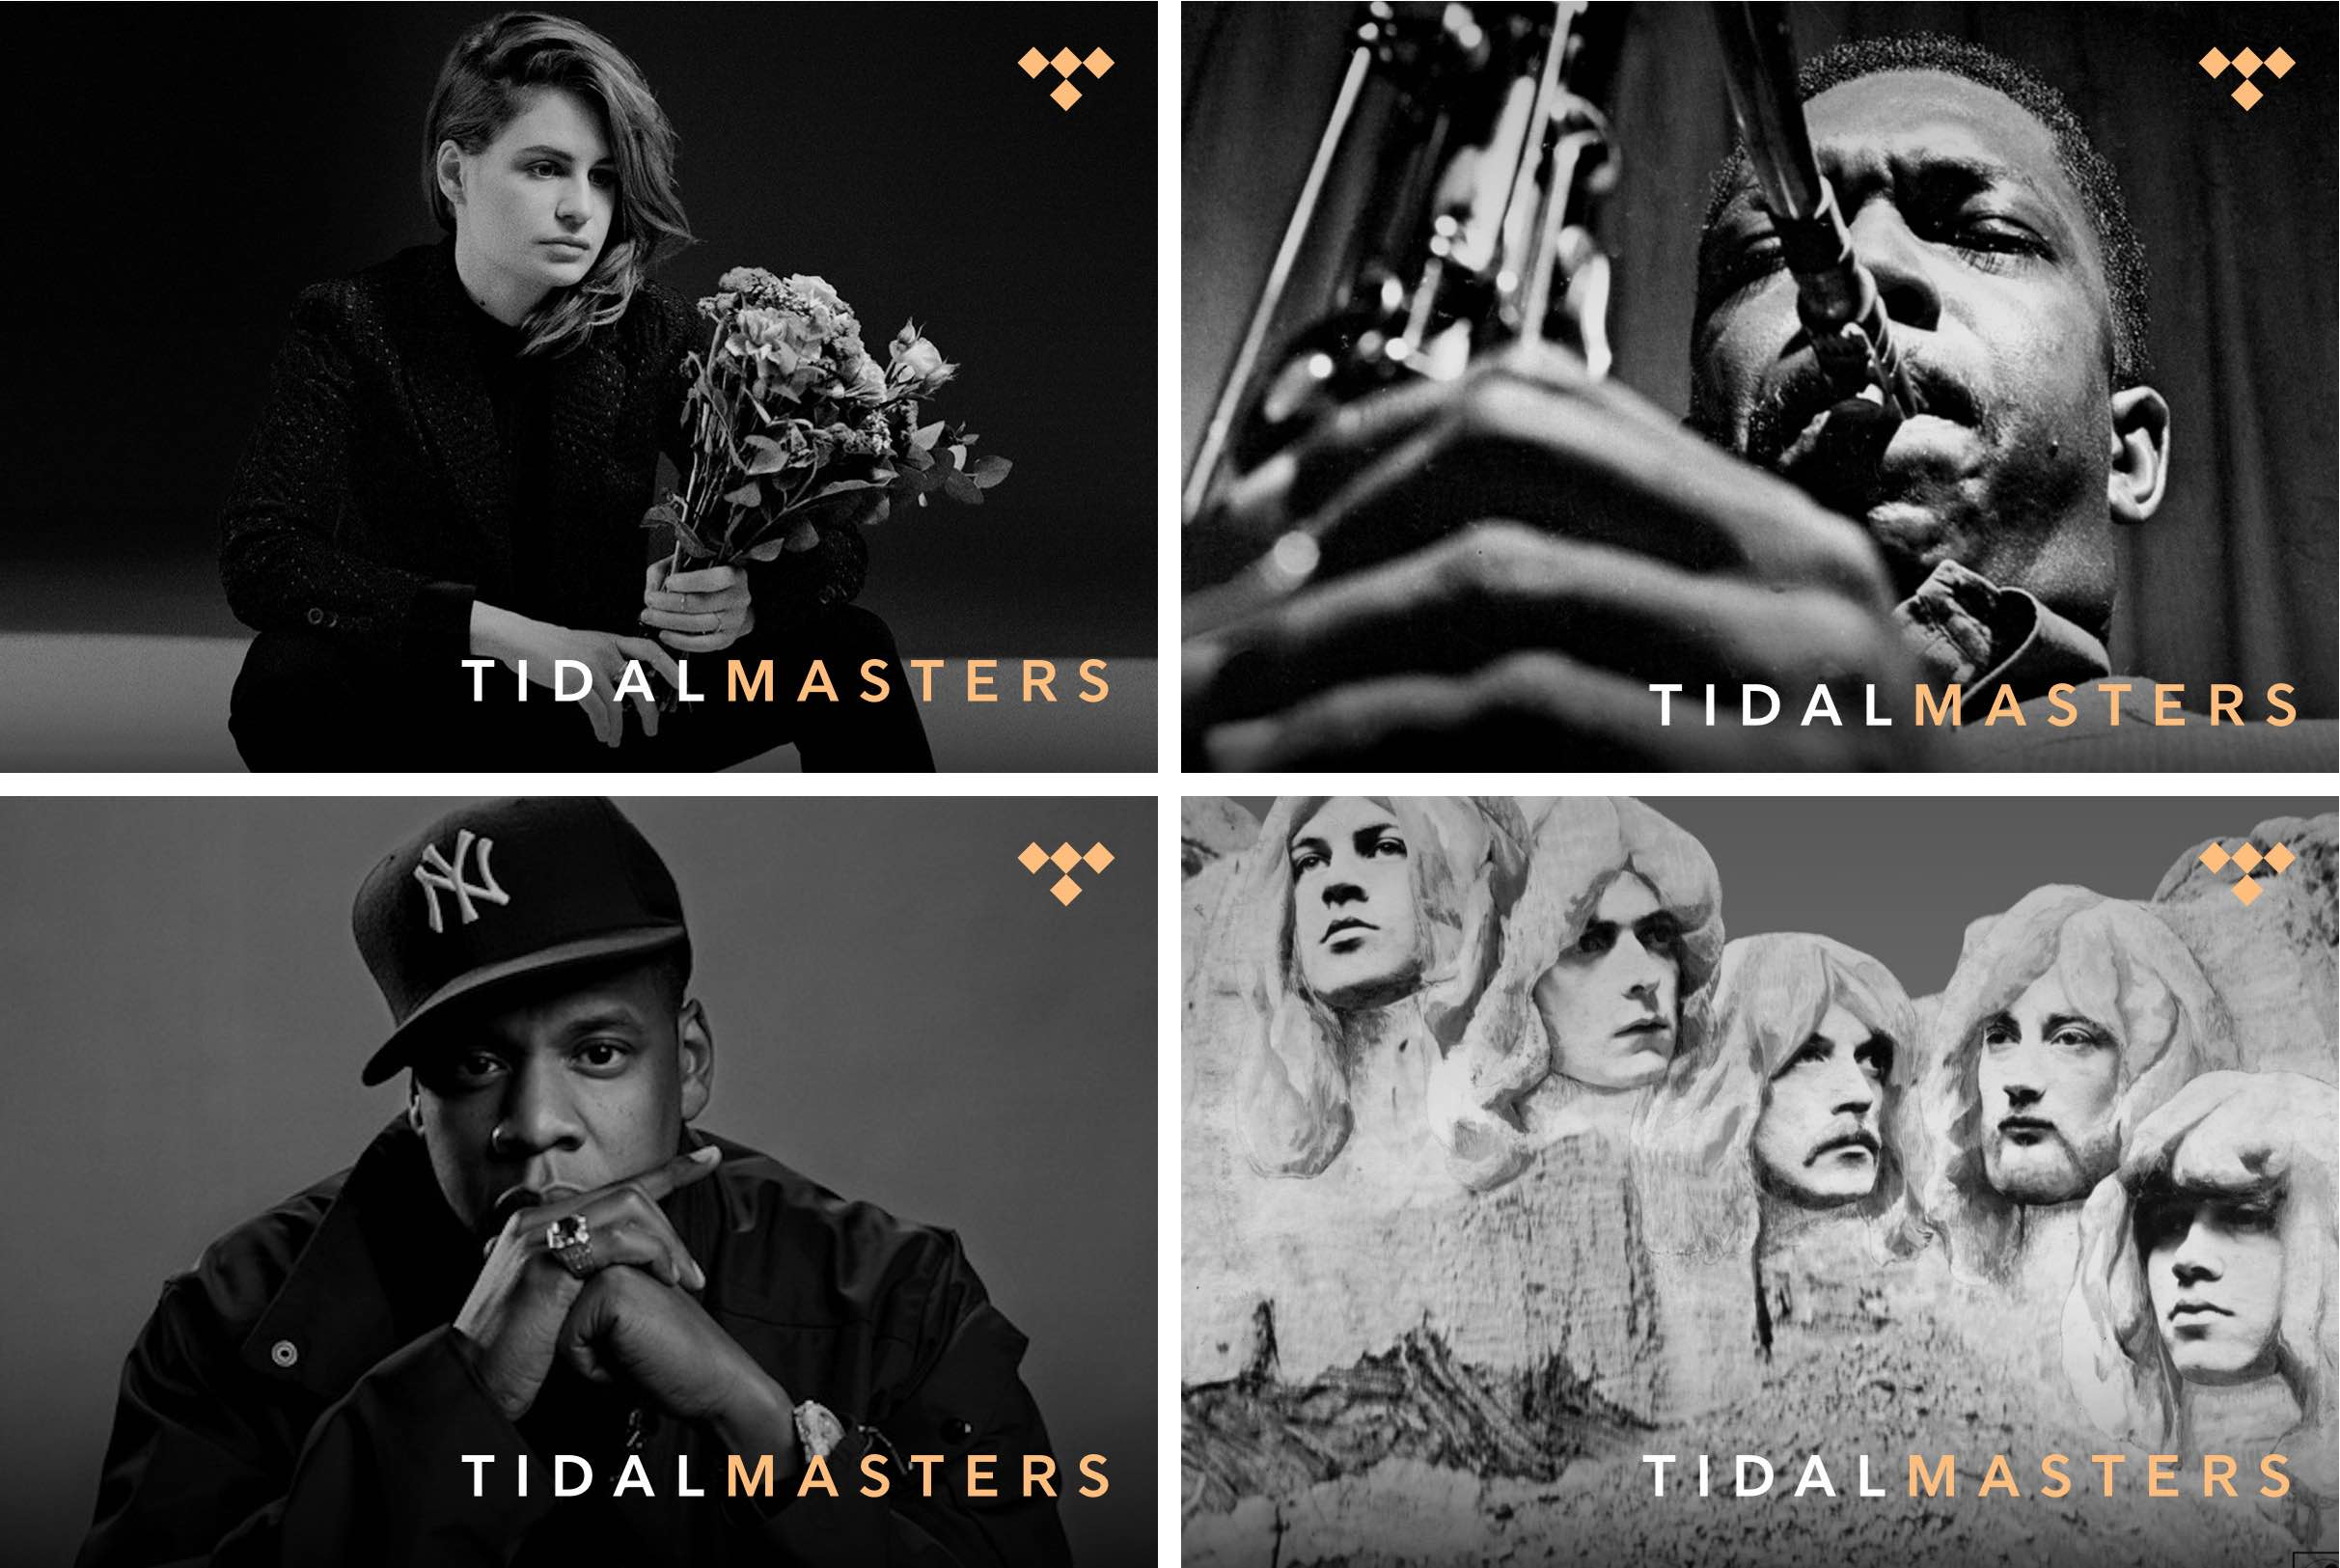 Tidal brings master-quality music to iOS devices for the